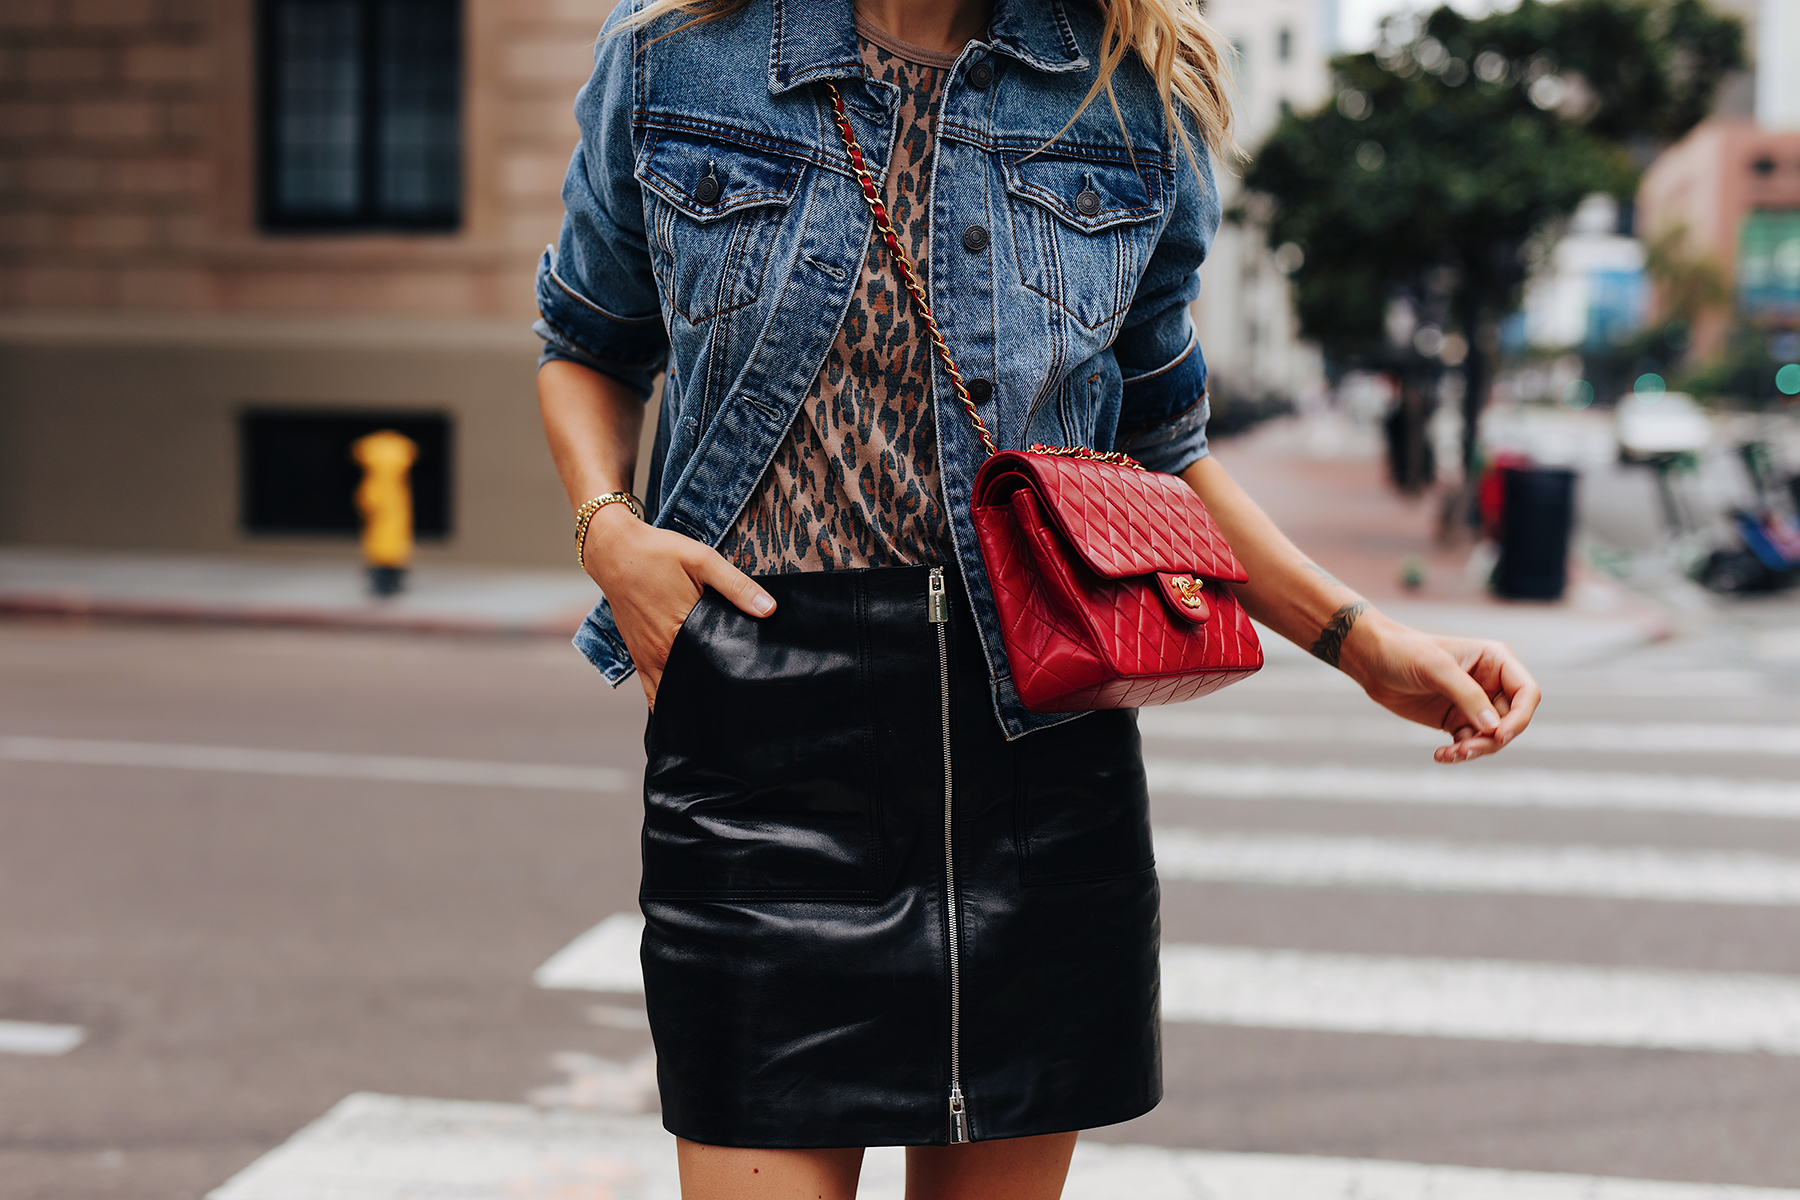 Fashion Jackson Wearing Abercrombie Denim Jacket Leopard Tshirt Anine Bing Black Leather Mini Skirt Chanel Quilted Red Handbag